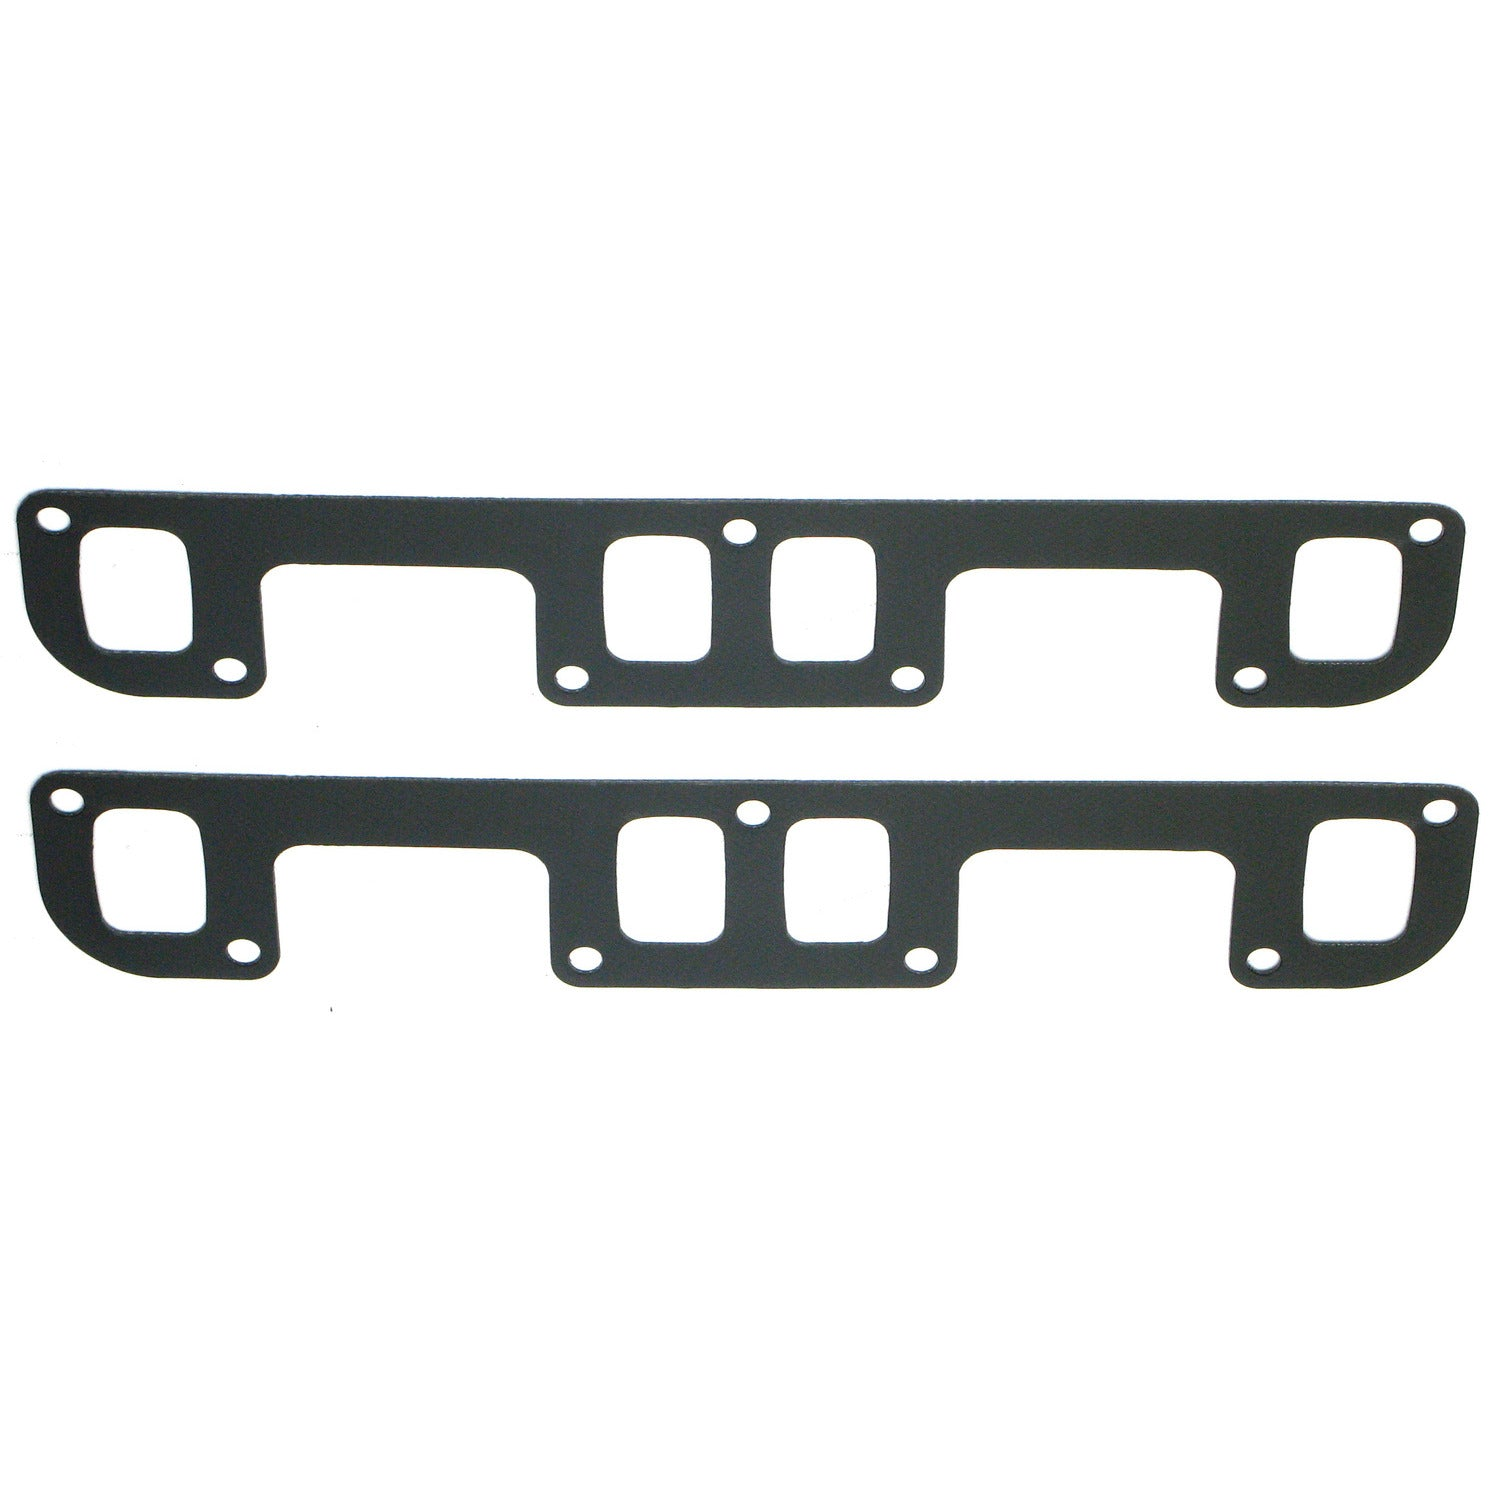 "Doug's Headers HG9400 Buick 350 1 3/4"" SAP (same as port) Header Flange Gaskets"